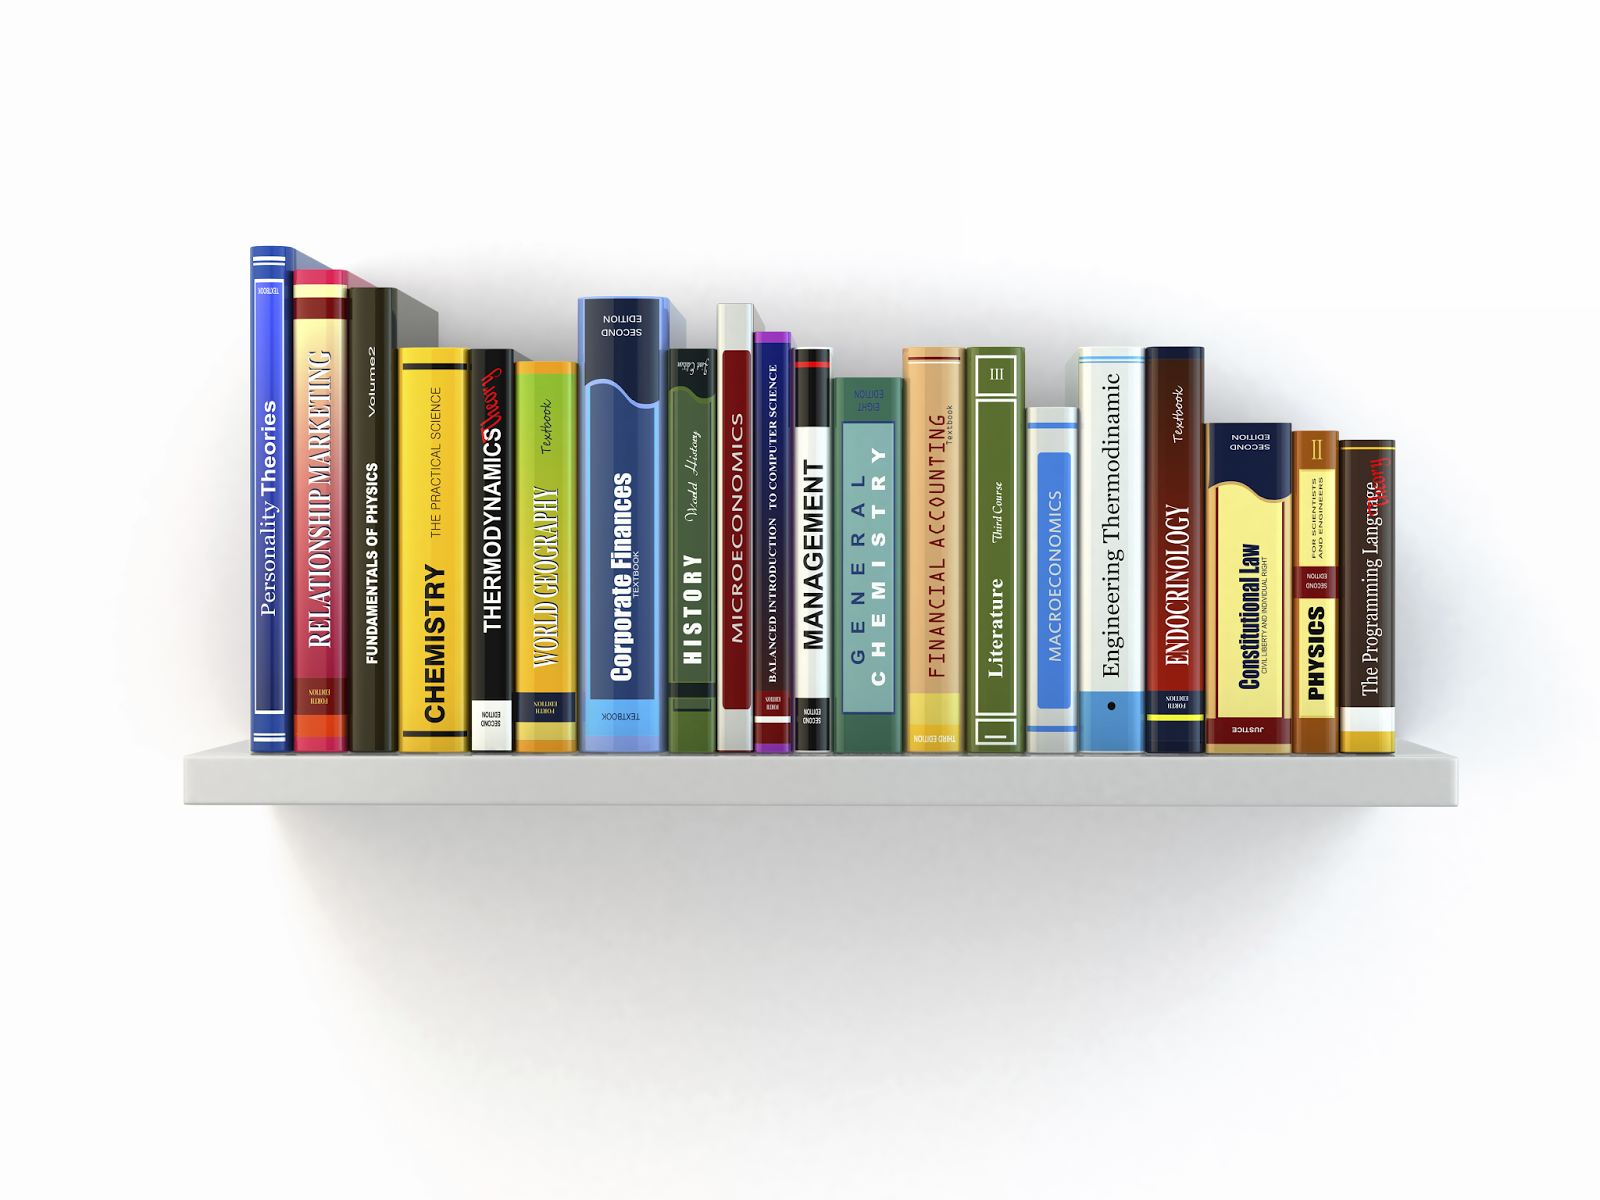 image shows small book shelf with array of textbooks.